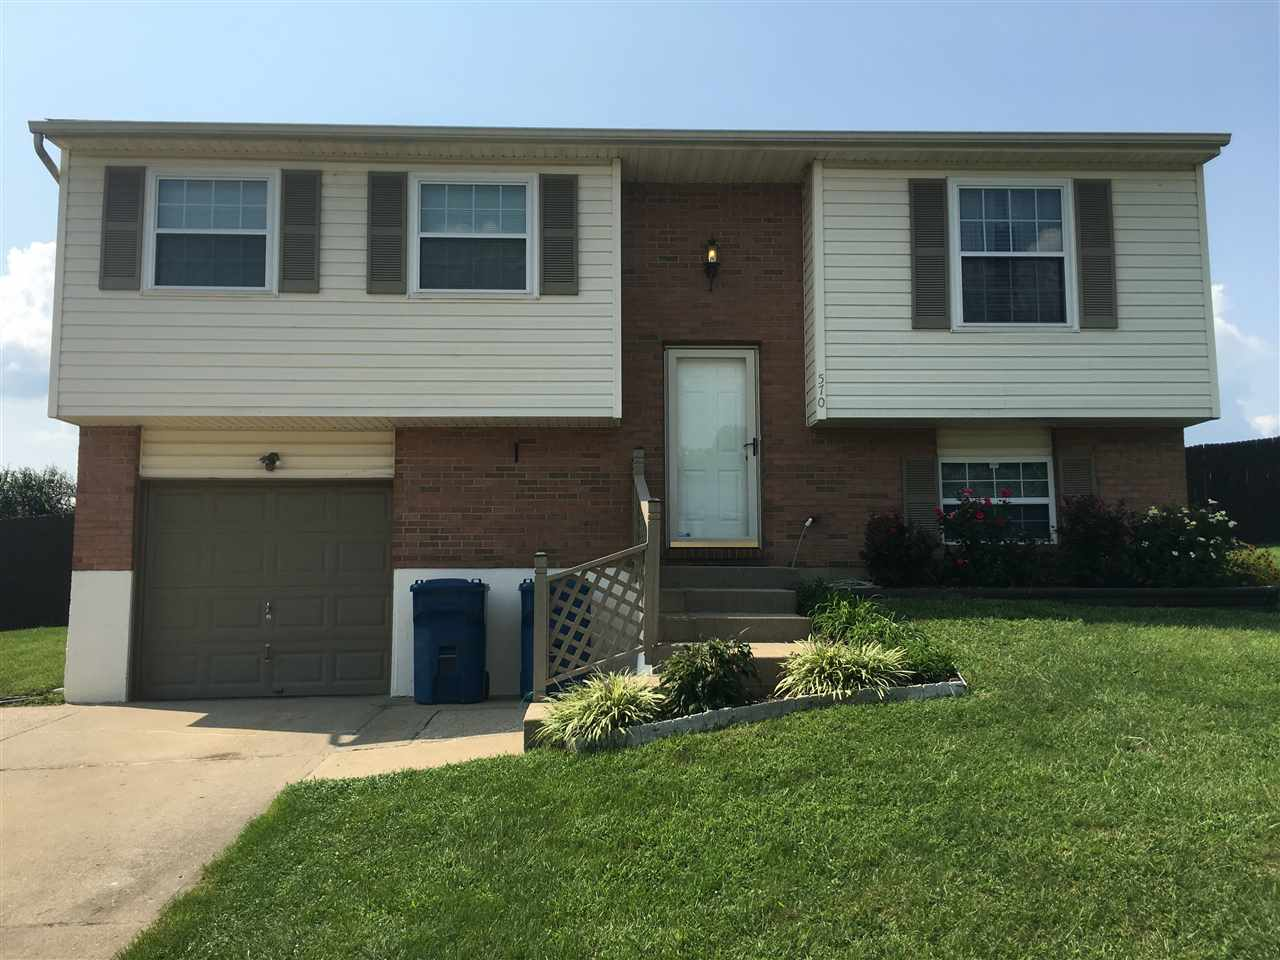 Photo 1 for 570 Spillman Dr Dry Ridge, KY 41035